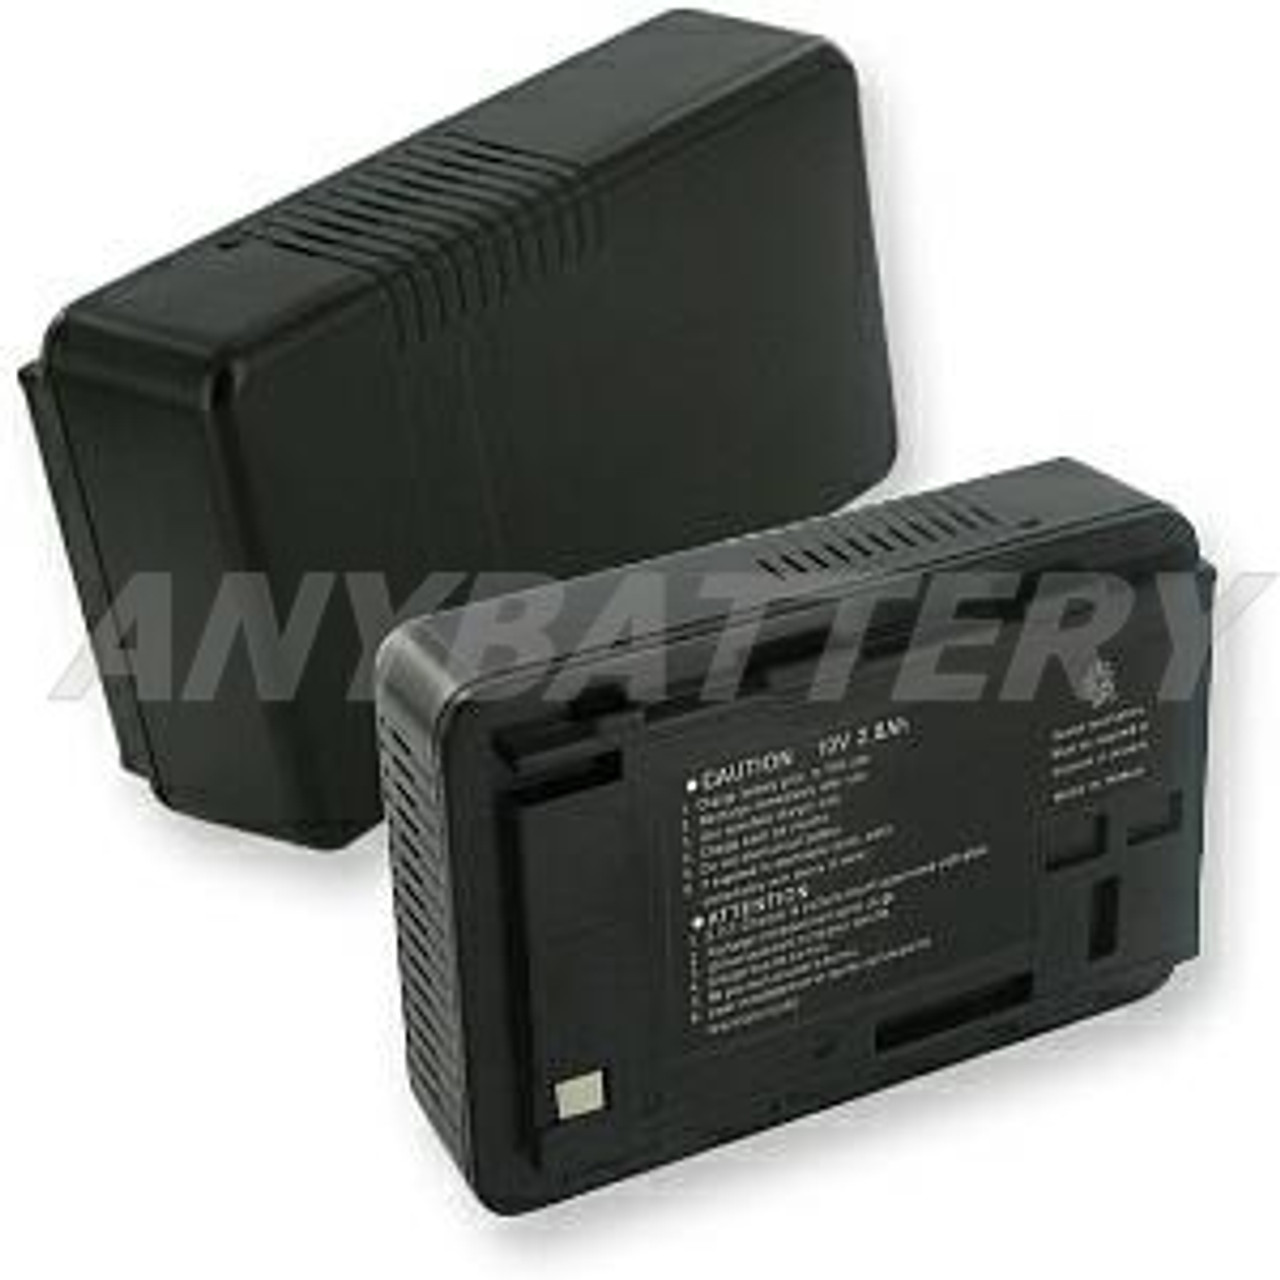 Battery Replacement for: General Electric CG706, General Electric CG708, General Electric CG732, General Electric CG733, General Electric CG735, Hitachi VM1300, Hitachi VM1350, Hitachi VM1350A, Hitachi VM1400A, Hitachi VM1600A, Hitachi VM1700A, Hitachi VM1800A, Hitachi VM1900A, Hitachi VM2140, Hitachi VM2300, Hitachi VM2300A, Hitachi VM2300E, Hitachi VM2400A, Hitachi VM2410CL, Hitachi VM2500A, Hitachi VM2580A, Hitachi VM2580E, Hitachi VM2600A, Hitachi VM2700A, Hitachi VM2800A, Hitachi VM2900A, Hitachi VM3300A, Hitachi VM3350, Hitachi VM3350A, Hitachi VM3700, Hitachi VM3700A, Hitachi VM3800A, Hitachi VM4400A, Hitachi VM4400E, Hitachi VM5300A, Hitachi VM5350A, Hitachi VM5400A, Hitachi VM5400C, Hitachi VM5400U, Hitachi VM6300A, Hitachi VM6500A, Hitachi VM7300, Hitachi VM7300A, Hitachi VM7400A, Hitachi VM7400LA, Hitachi VM7500A, Hitachi VM7500LA, Hitachi VM8200A, Hitachi VM8300A, Hitachi VM8400LA, Hitachi VM8500LA, Hitachi VMBP64, Hitachi VMBP64AS, Hitachi VMBP65, Hitachi VMBP66, Hitachi VMBP67, Hitachi VMBP67A, Hitachi VMBP6M, Hitachi VMS8200A, JC Penney 890-2561, JC Penney 890-2595, JC Penney 8902561, JC Penney 8902595, Memorex MODEL 103, Memorex T16-BP64, Memorex T16BP64, Minolta V-118, Minolta V-16, Minolta V-16R, Minolta V-18, Minolta V-18R, Minolta V-20, Minolta V-20R, Minolta V-228, Minolta V118, Minolta V16, Minolta V16R, Minolta V18, Minolta V18R, Minolta V20, Minolta V20R, Minolta V218, Minolta V228, Minolta VBC-166, Minolta VBC166, Minolta VBP-160, Minolta VBP-161, Minolta VBP-165, Minolta VBP-166, Minolta VBP160, Minolta VBP161, Minolta VBP165, Minolta VBP166, ProScan PSC10, Radio Shack 16804, Radio Shack 16830, Radio Shack 16BP65, Radio Shack MODEL 102, Radio Shack MODEL 103, Radio Shack MODEL 126, Radio Shack T16BP64, Radio Shack VMBP66RS, RCA CB-096FL, RCA CB-096FS, RCA CB096 LONG, RCA CB096FL, RCA CB096FS, RCA CC-400, RCA CC-405, RCA CC-406, RCA CC-407, RCA CC-412, RCA CC-413, RCA CC-414, RCA CC-415, RCA CC-416, RCA CC-417, RCA CC-420, RCA CC-421, RCA CC